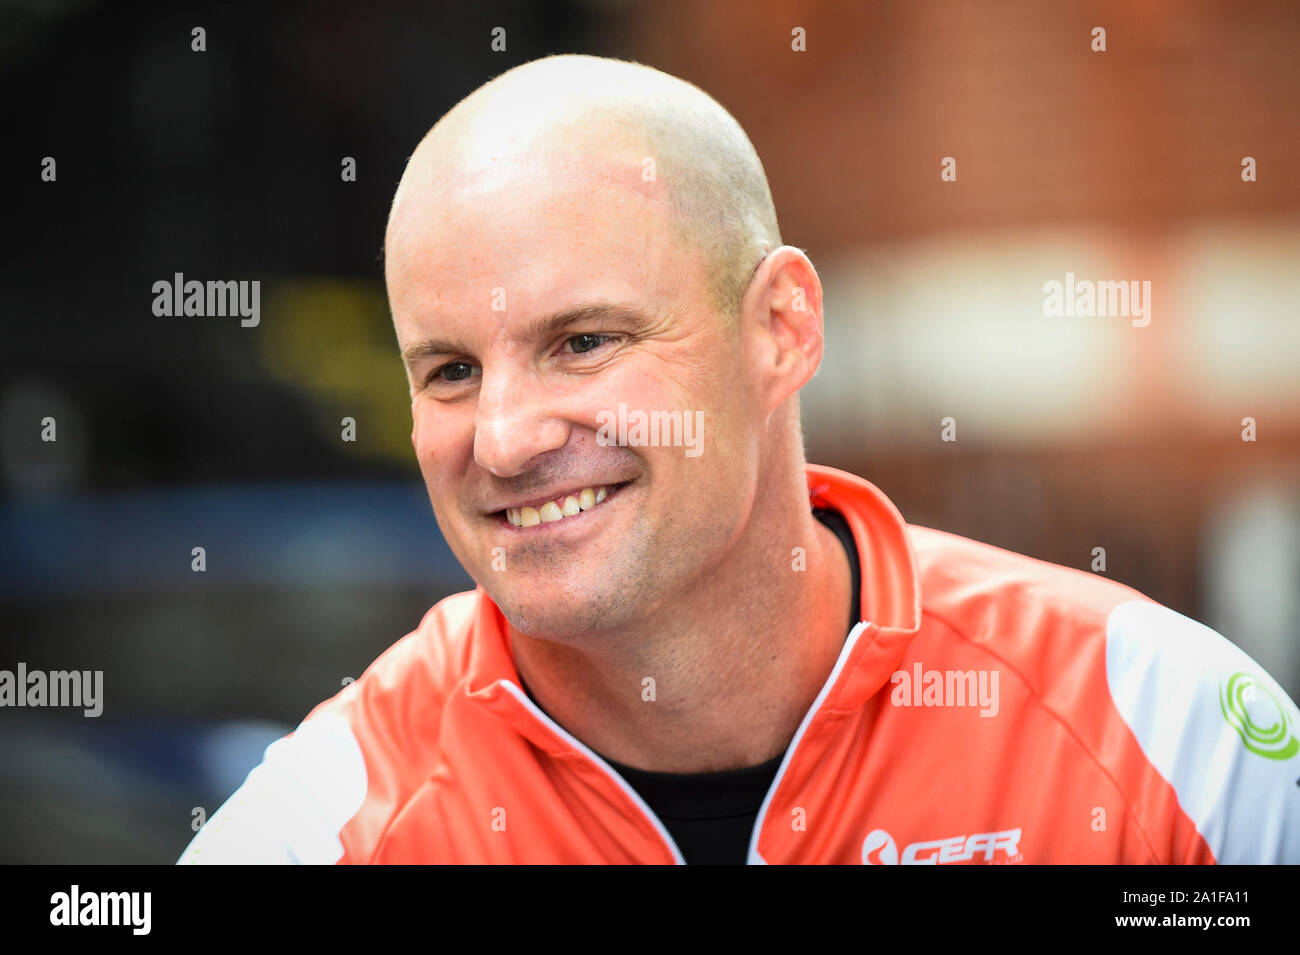 London, UK.  26 September 2019.  Former England cricket captain, Sir Andrew Strauss visits The Royal Marsden during the Breathe for Life Cycle Challenge, a community cycle relay from Lands End to John O Groats, comprising engaged patients, local cycle clubs, interested individuals, doctors and nurses and scientific experts.  Funds are being raised for the Ruth Strauss Foundation and ALK-positive UK Lung Cancer charity.  Sir Strauss's wife Ruth died from ALK+ lung cancer.  Credit: Stephen Chung / Alamy Live News Stock Photo